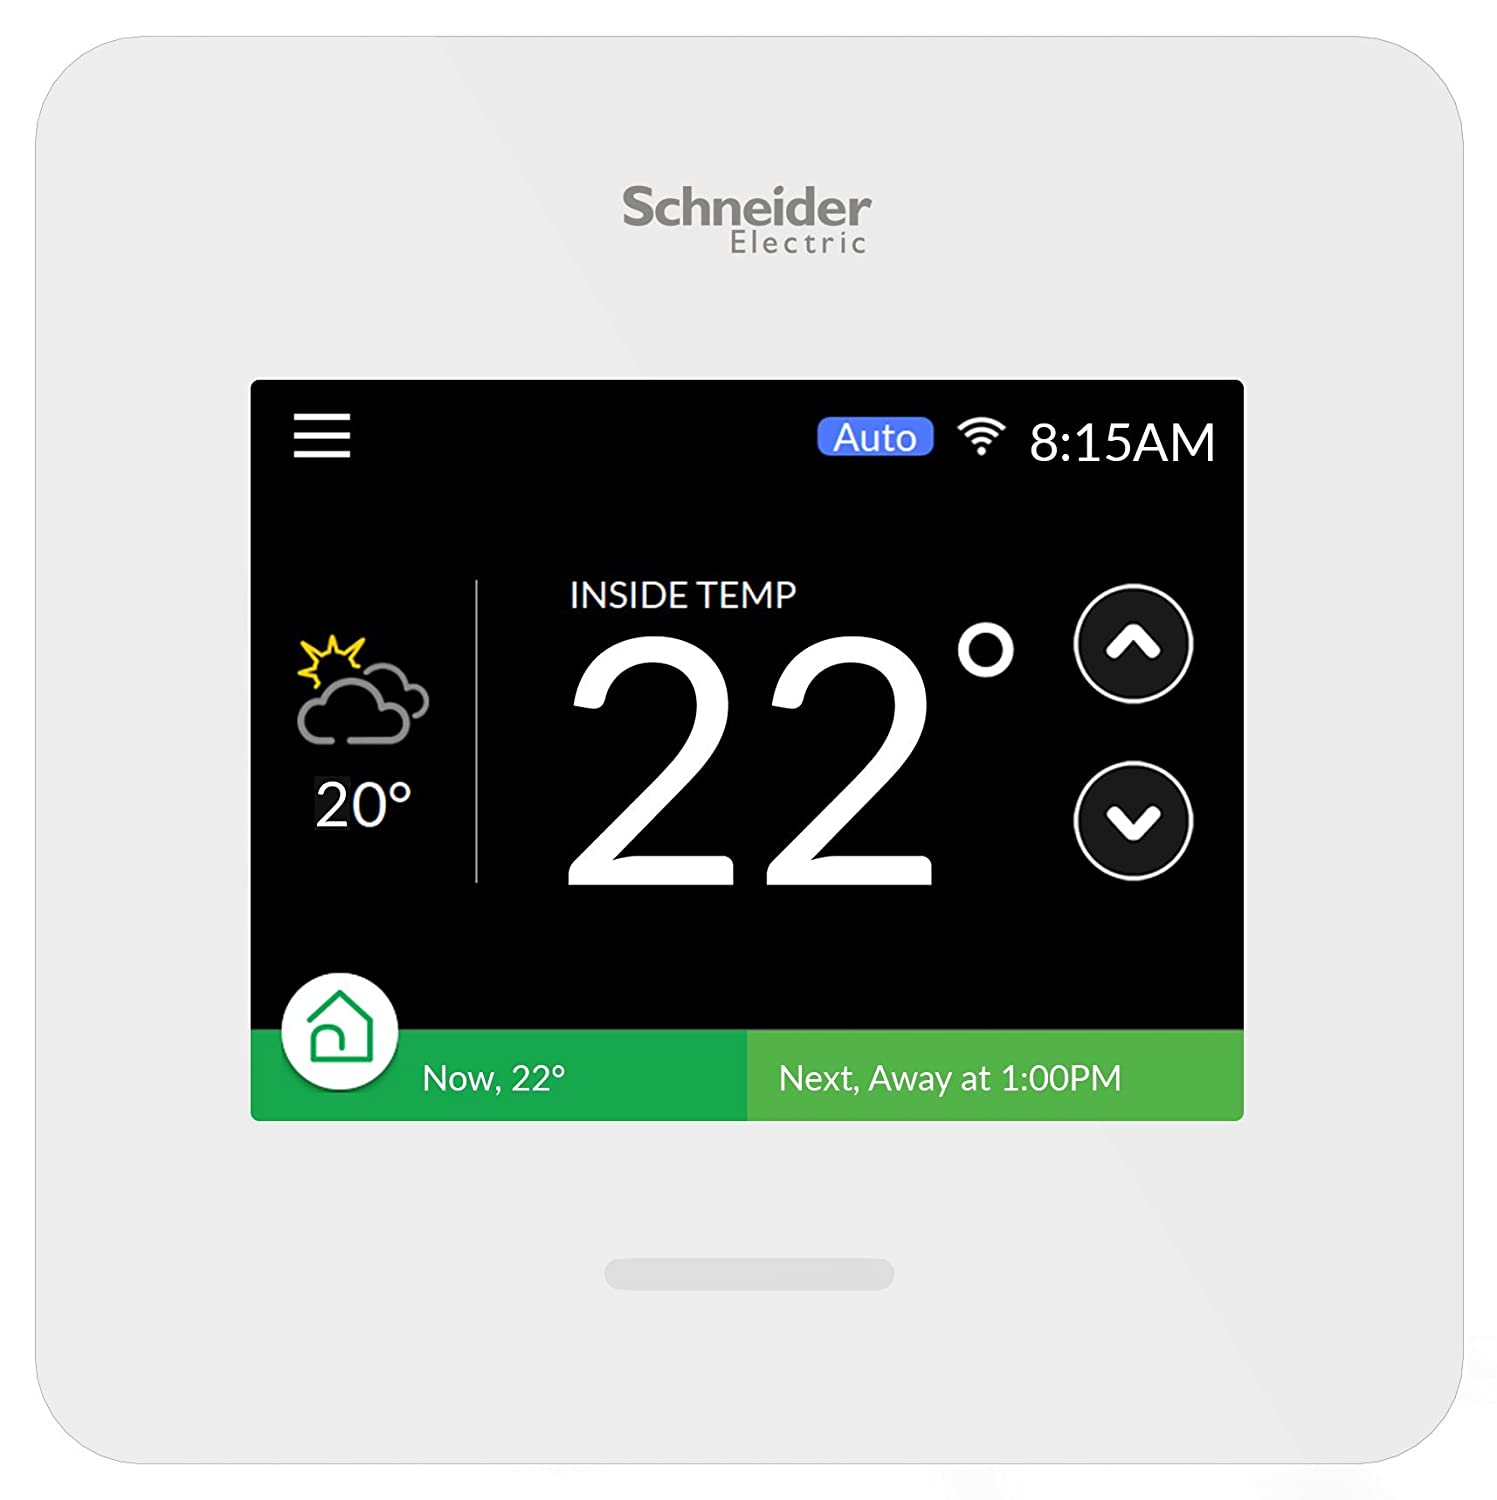 Schneider Electric Wiser Air Smart Thermostat Wi Fi Programmable Wiring Iris With Comfort Boost And Touch Screen Display White Tools Home Improvement Amazon